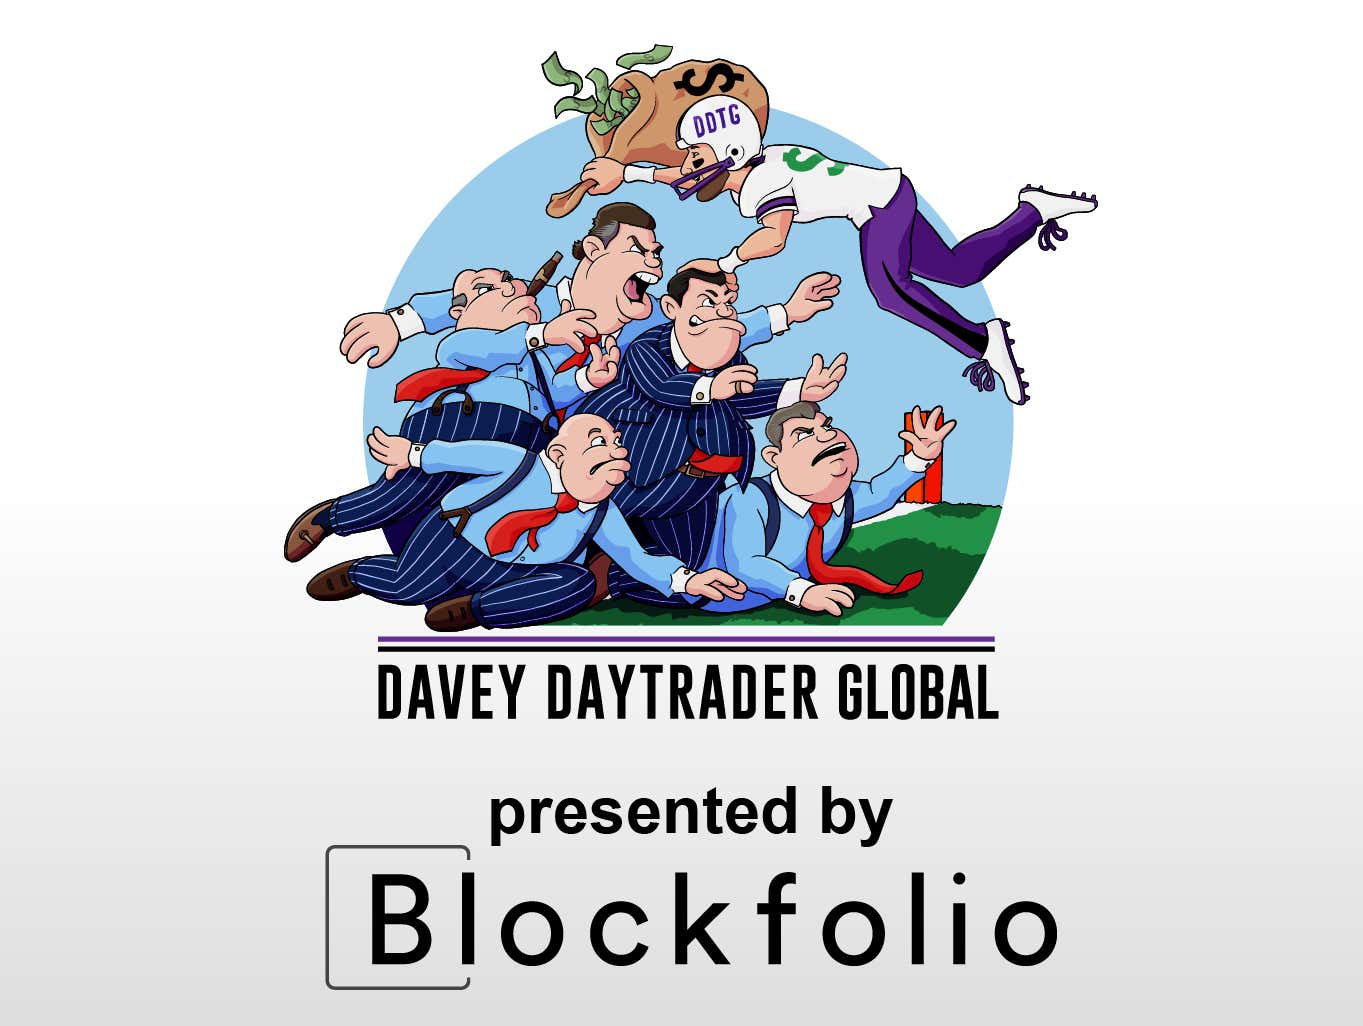 Davey Day Trader presented by Blockfolio - April 22, 2021